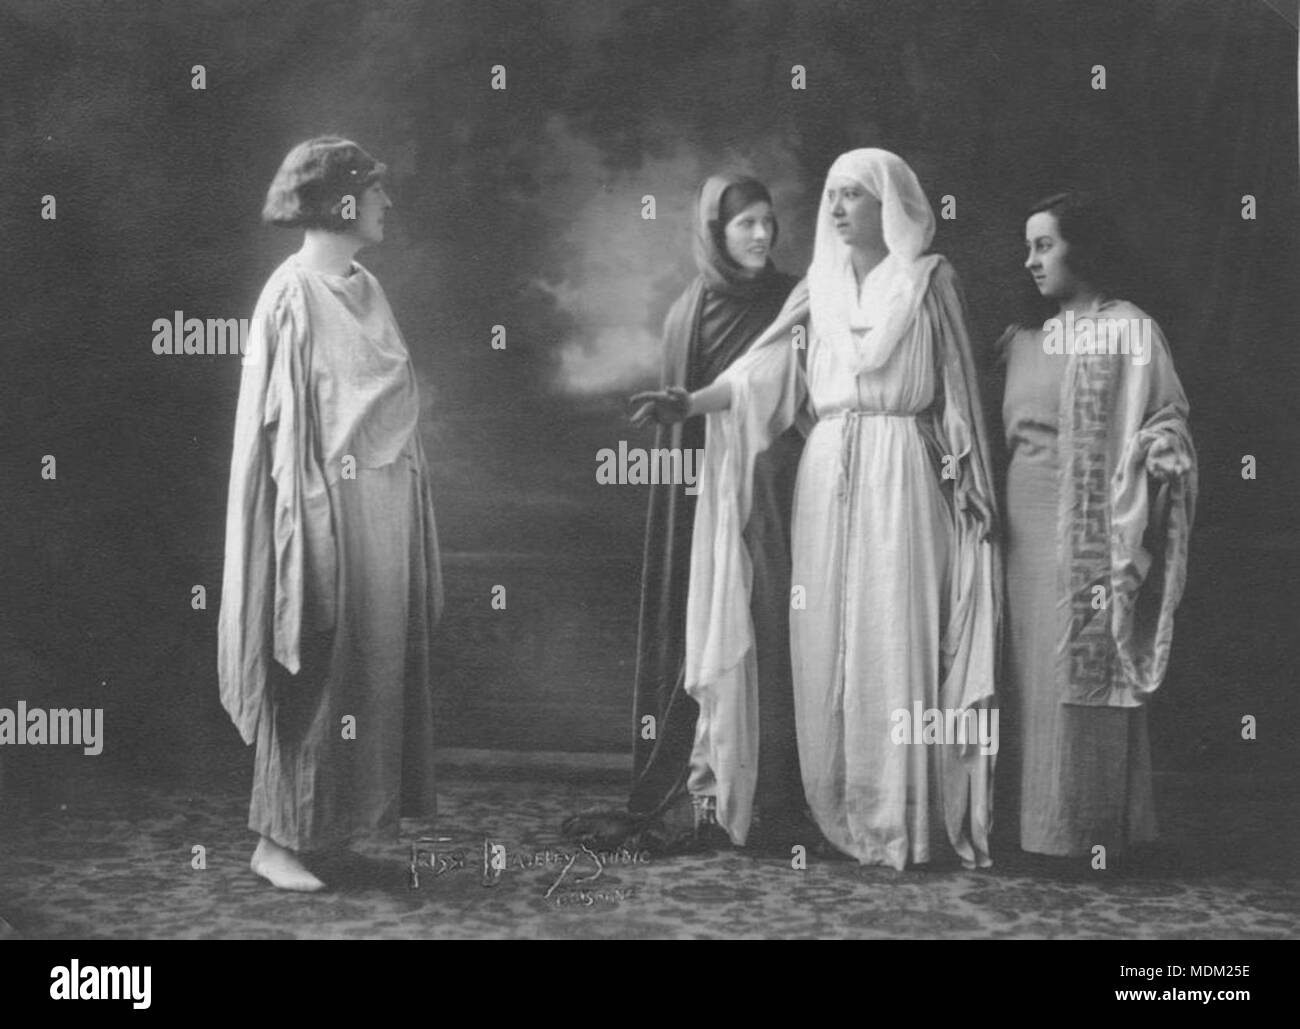 Group, including Babette Stephens, wearing classical Greek-style costume, 1930-1940 Stock Photo